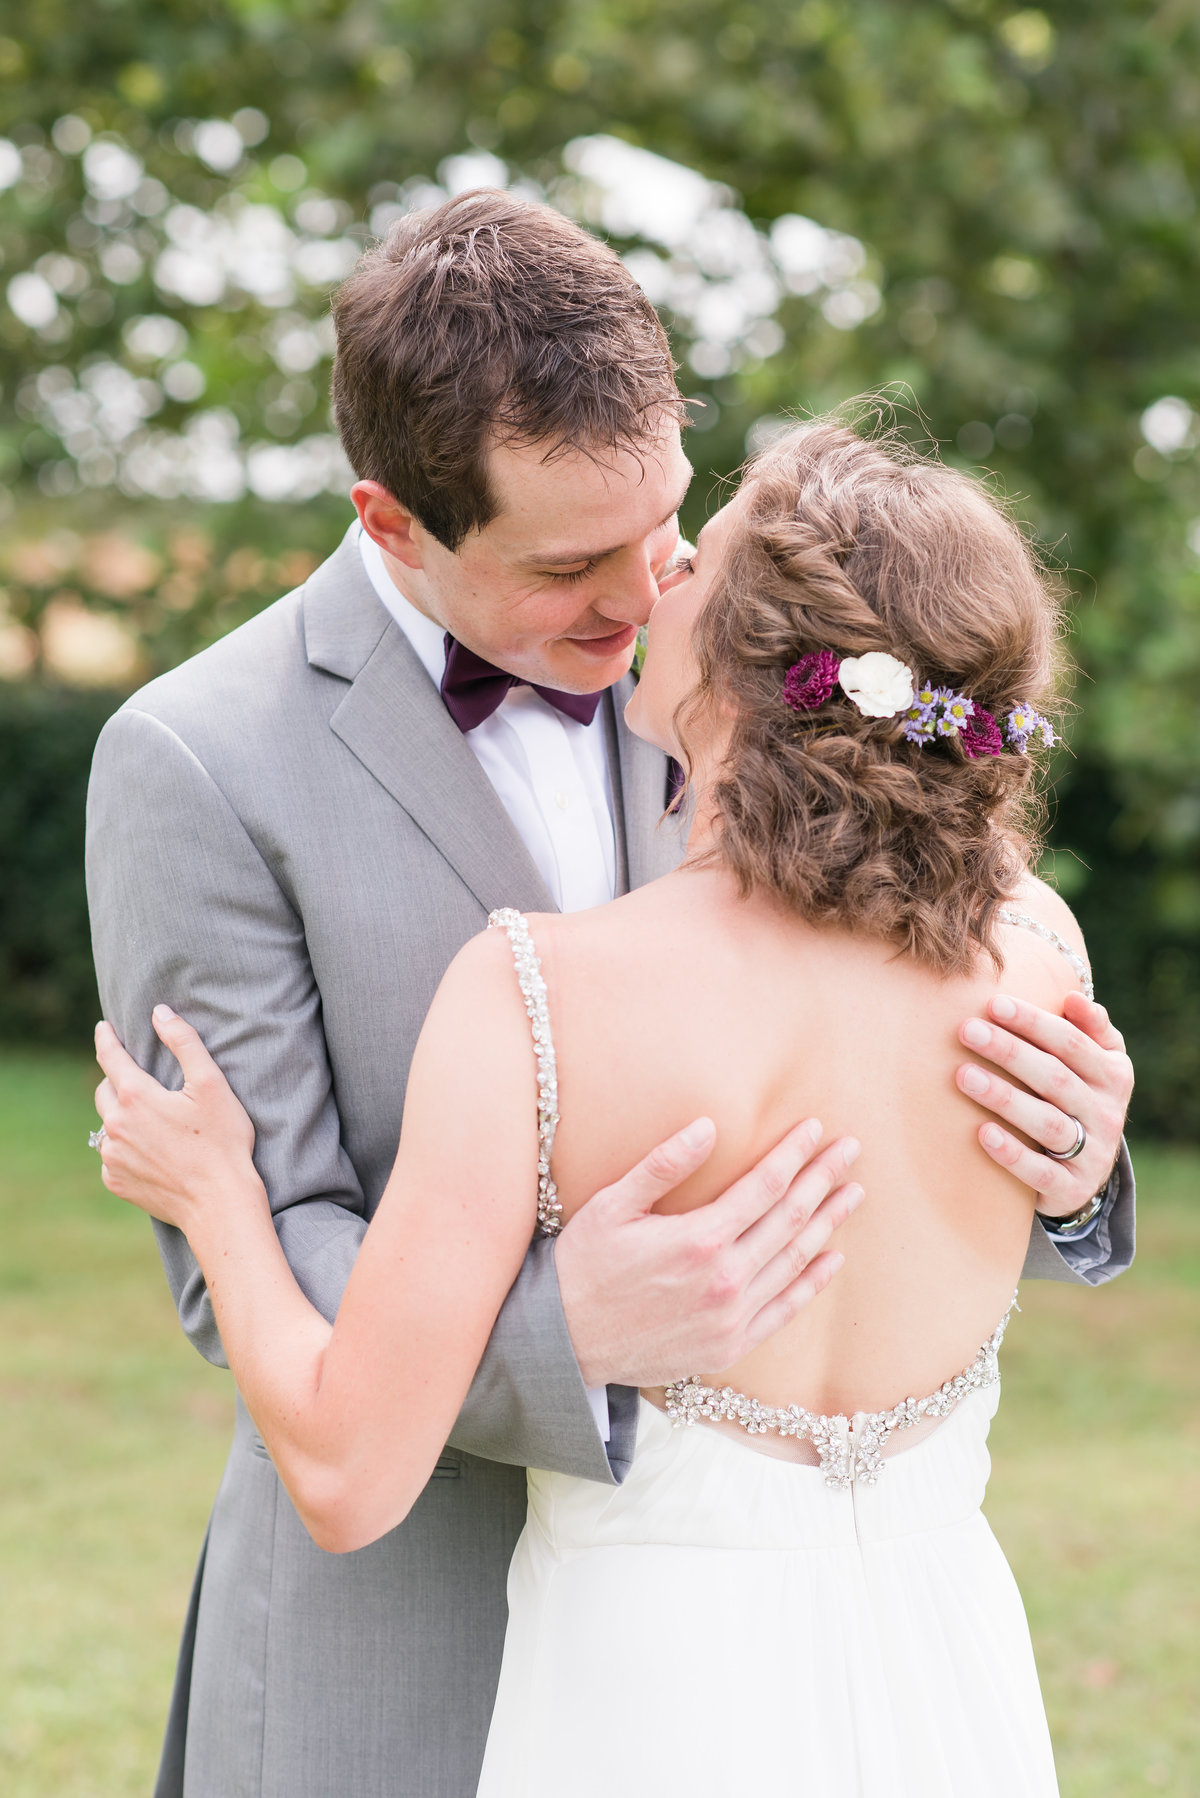 A Merry Hill Wedding, Michelle and Sara Photography, Mebane NC3